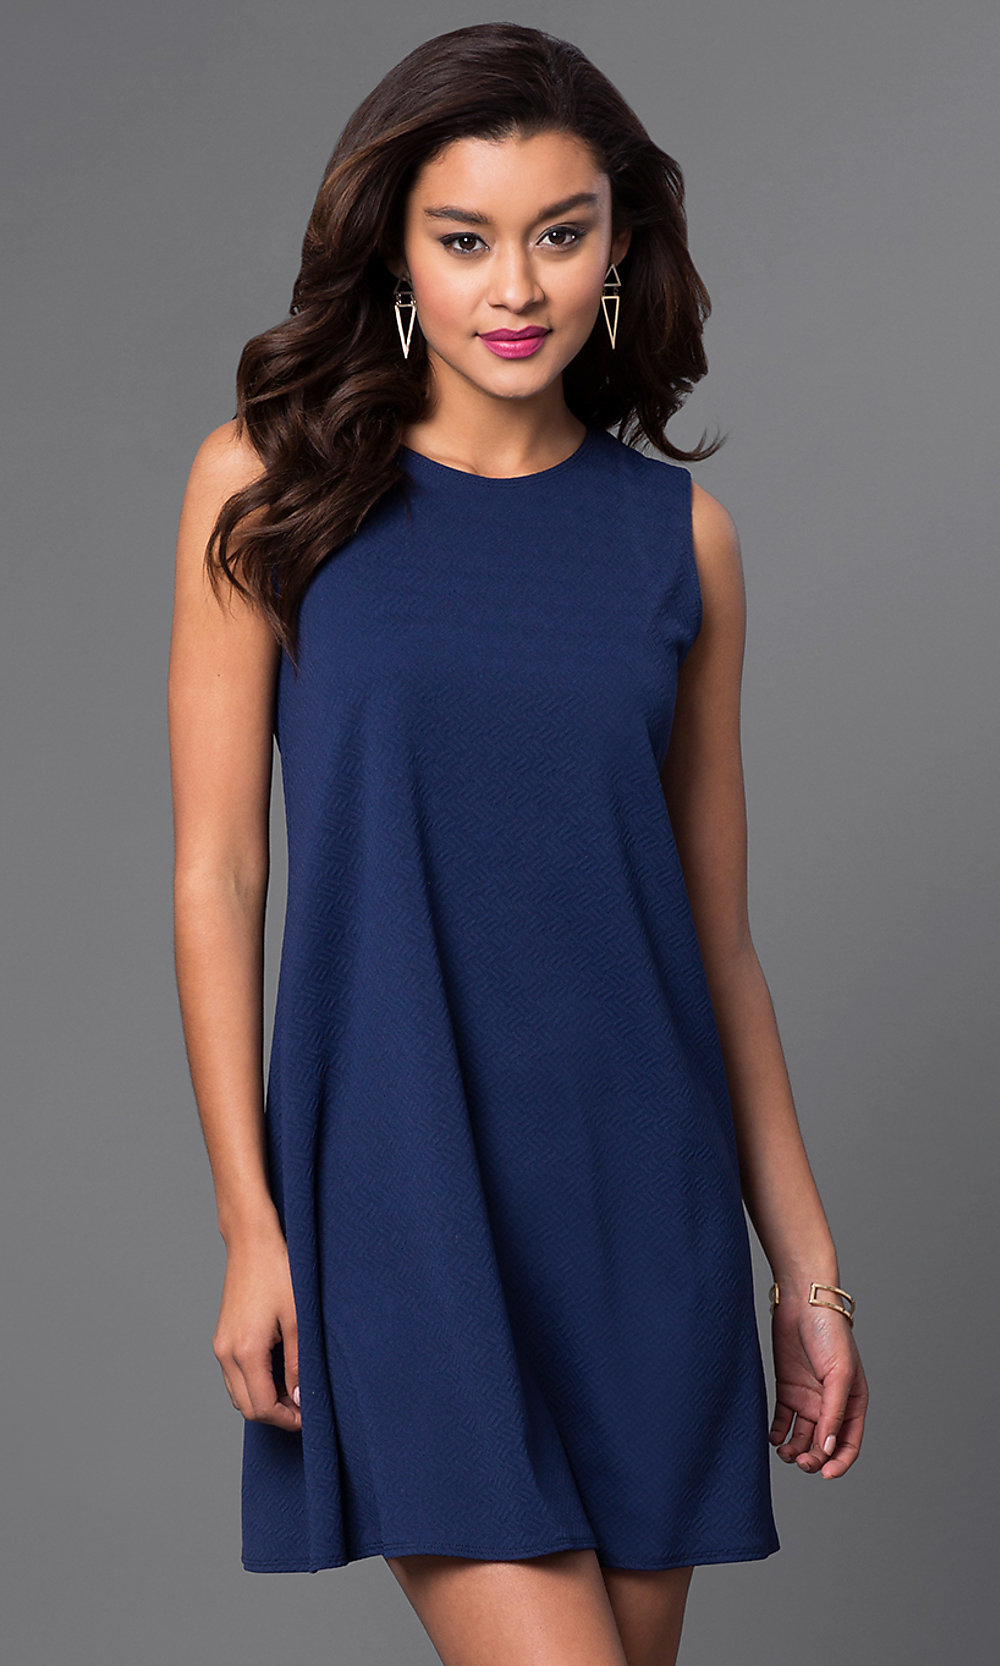 Navy Casual Dresses